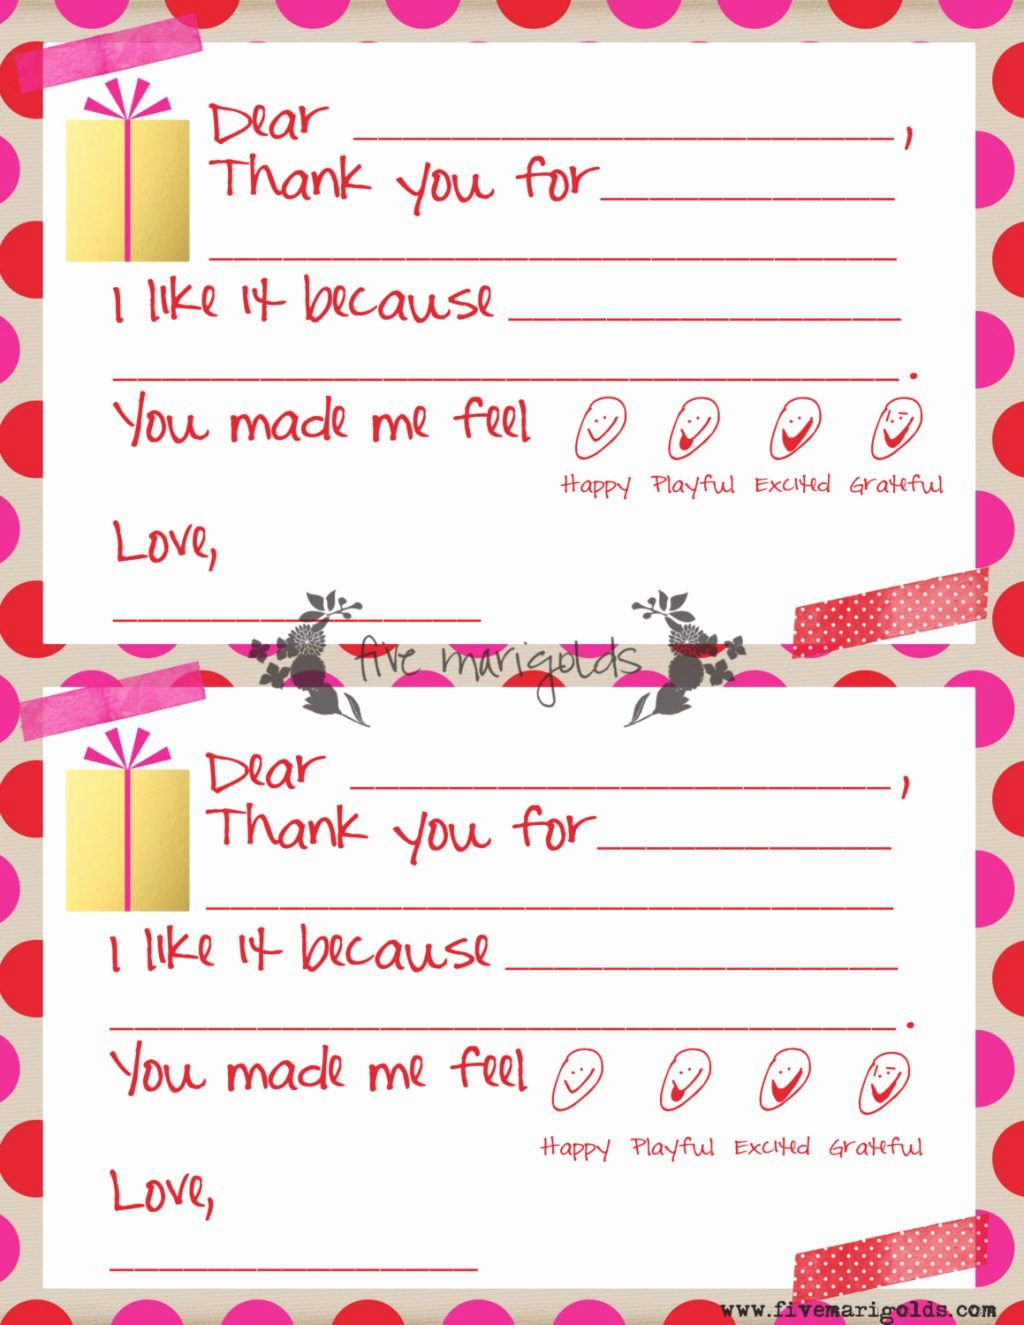 Twitter Template for Students Printable Fresh Christmas Thank You Note Templates for Kids Five Marigolds